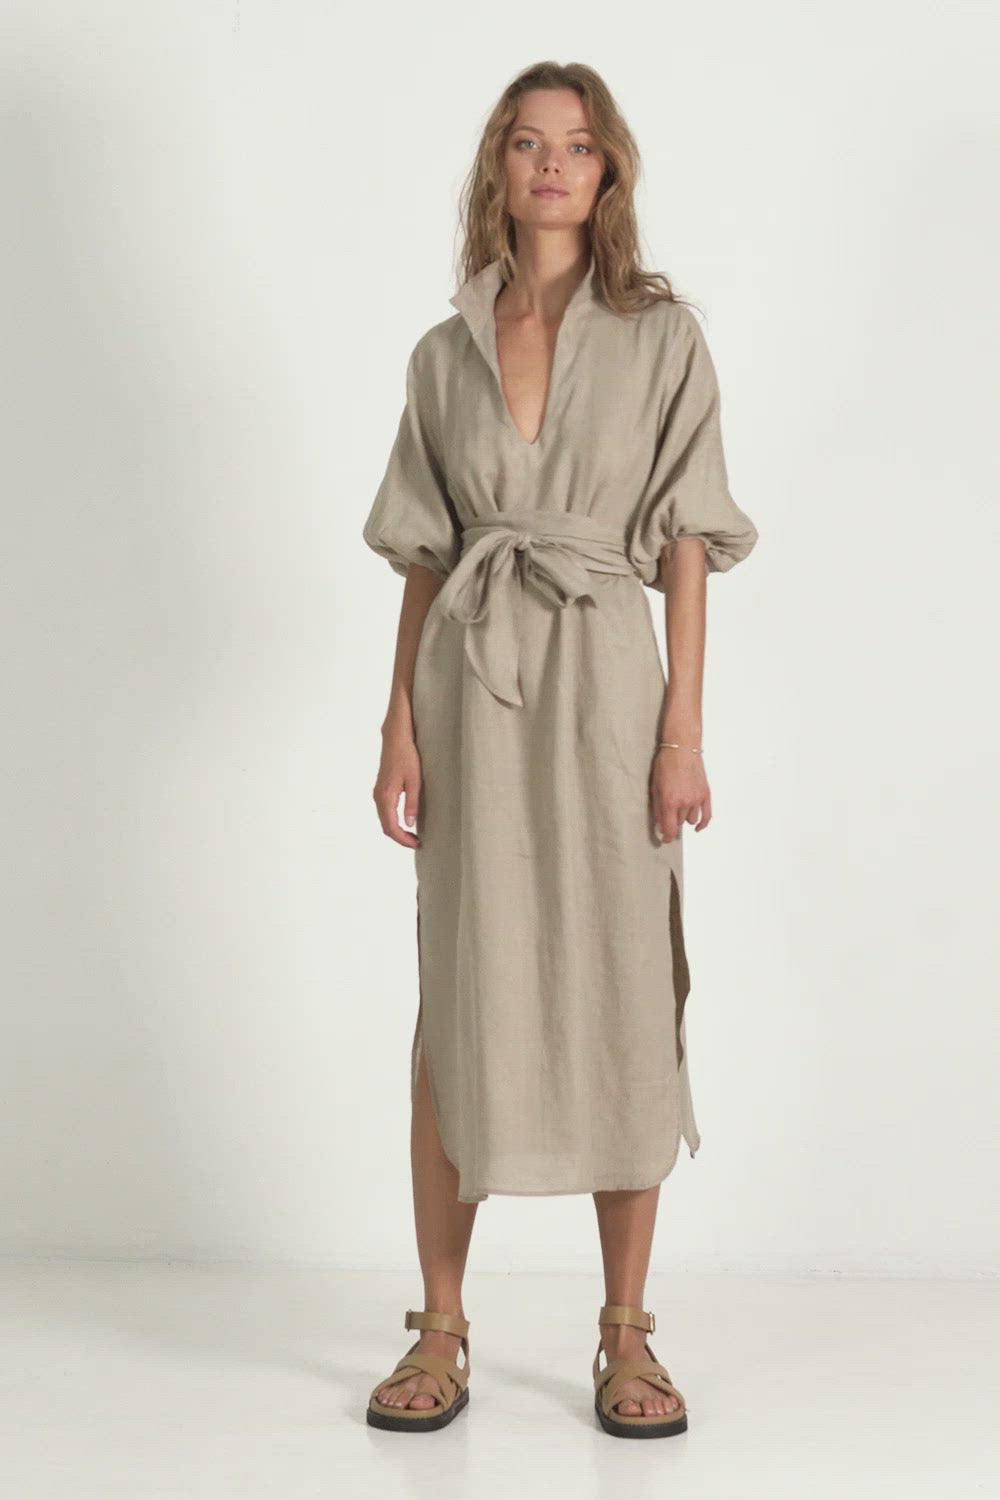 A woman in a linen maxi dress by Lilya for winter